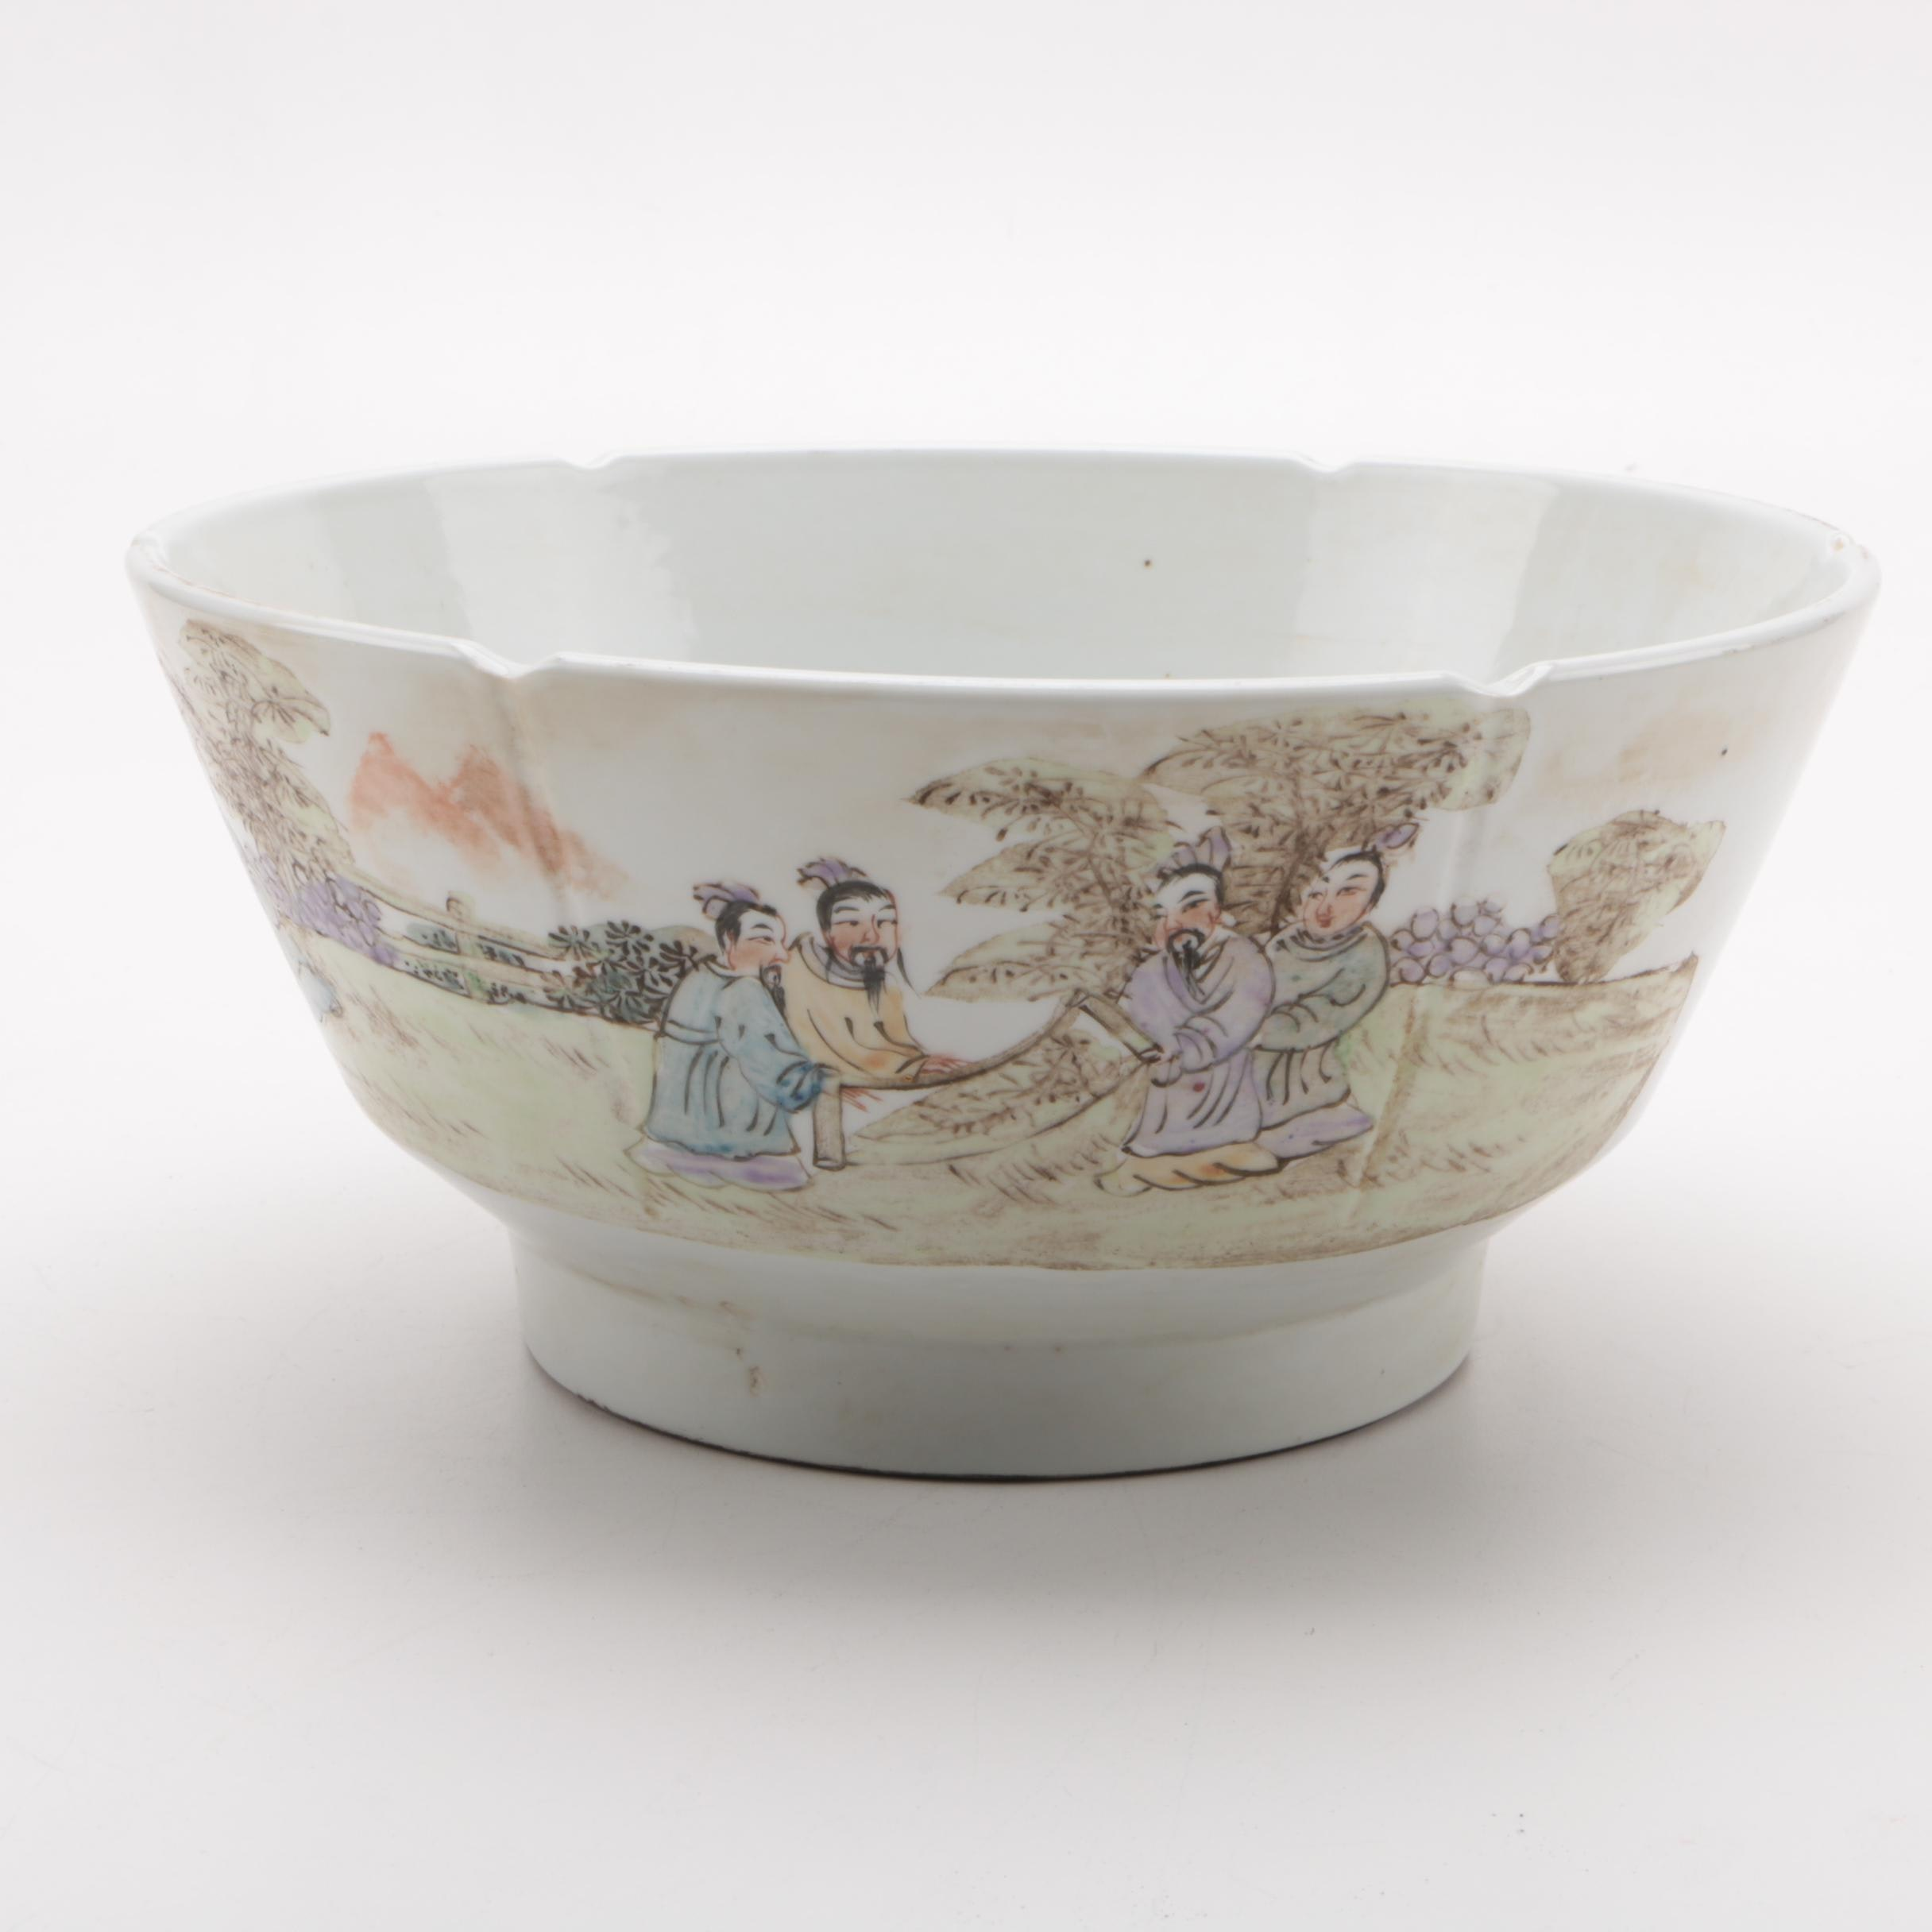 Vintage Hand-painted Chinese Porcelain Bowl